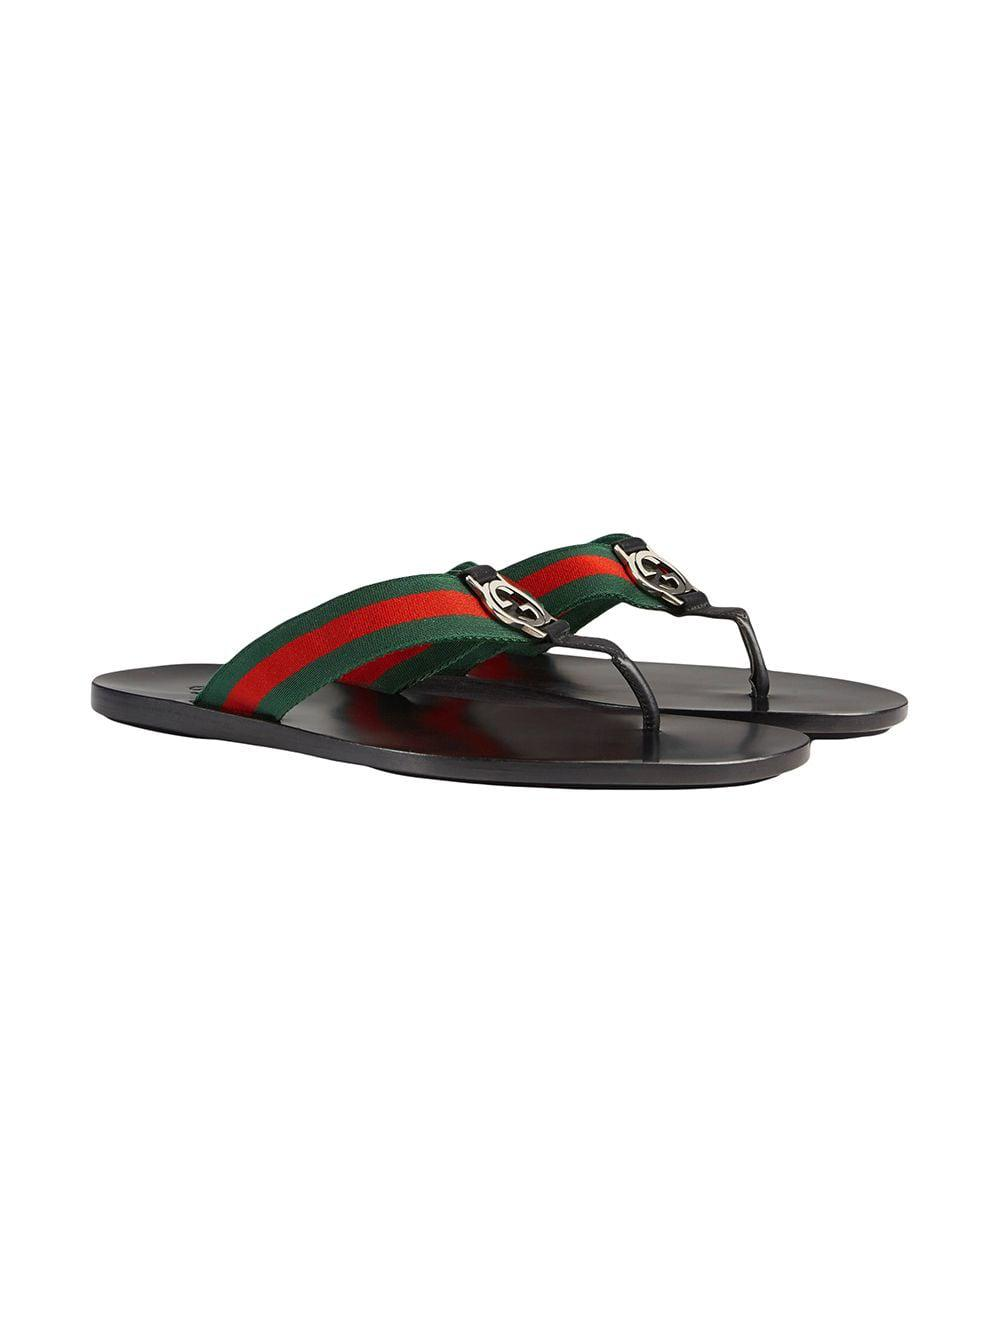 1187605446b Gucci Web Strap Thong Sandal in Black for Men - Save 14% - Lyst